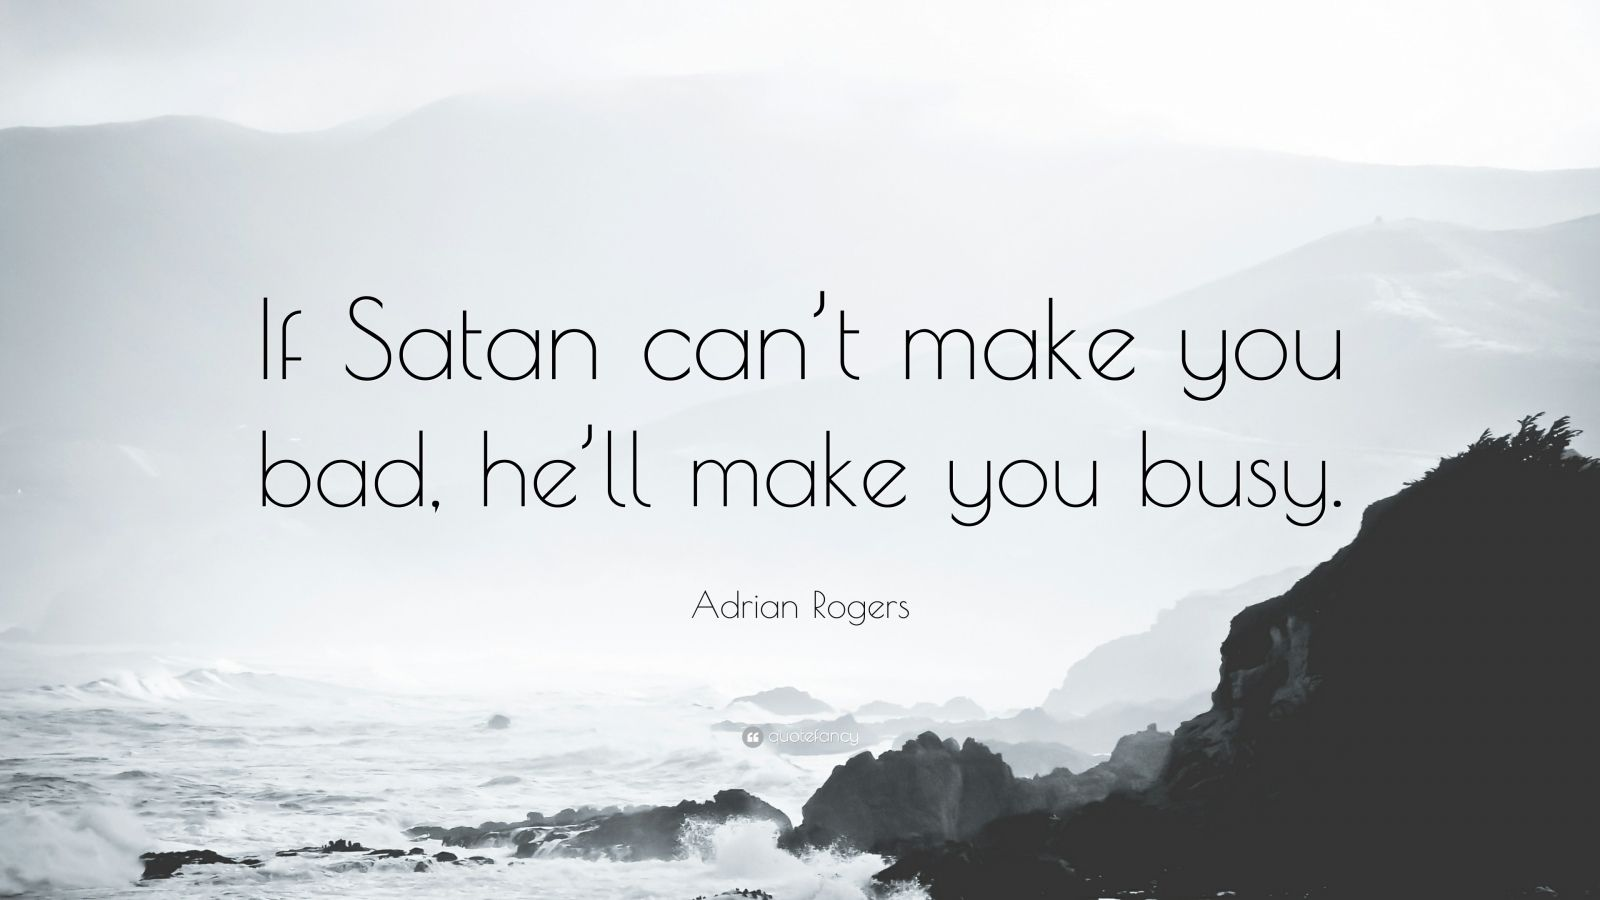 Busy Wallpaper With Quotes Adrian Rogers Quote If Satan Can T Make You Bad He Ll